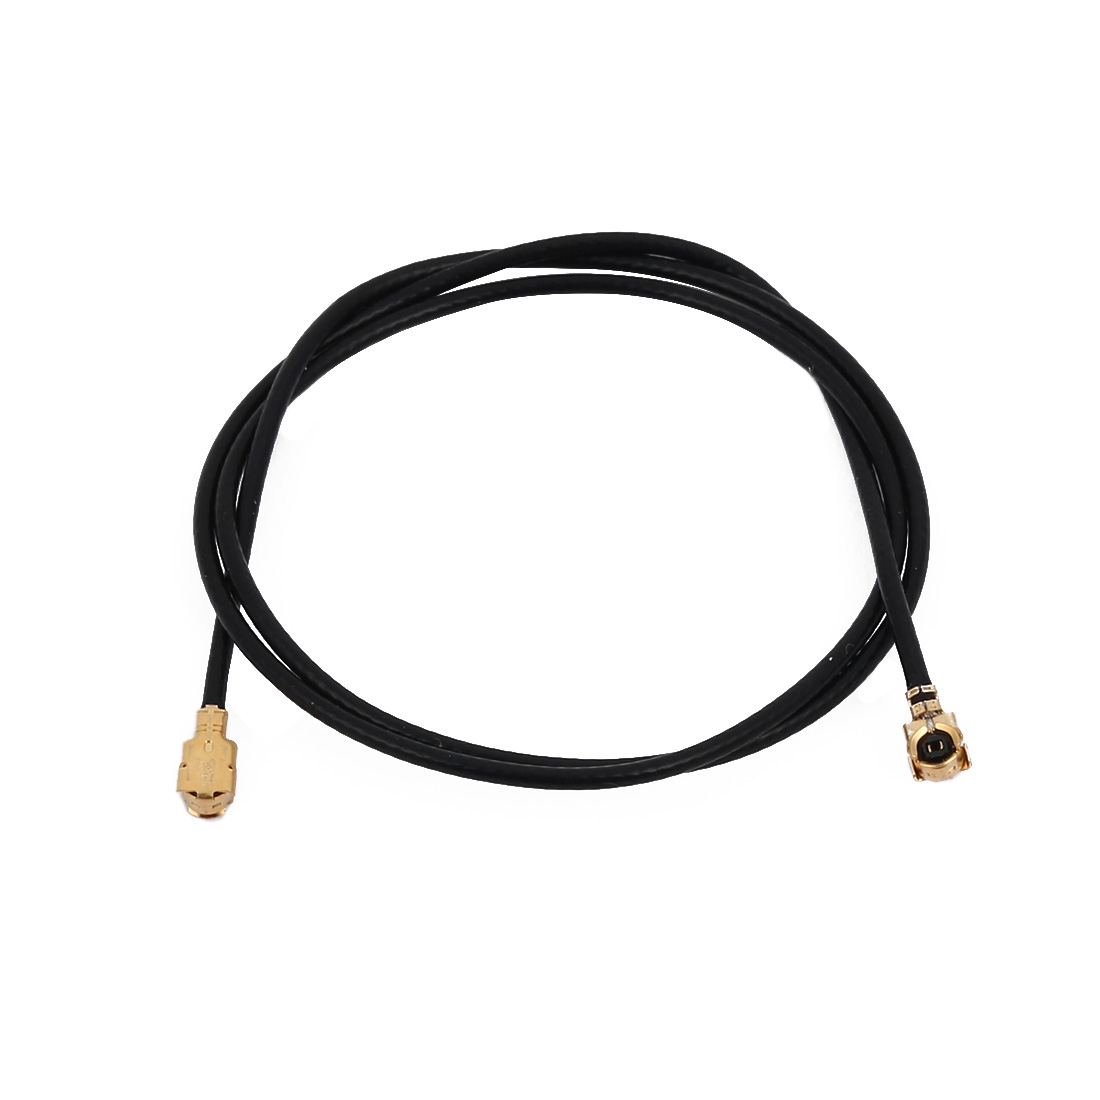 RF1.13 IPEX 1.0 to IPEX 1.0 Antenna WiFi Pigtail Cable 30cm Length for Router